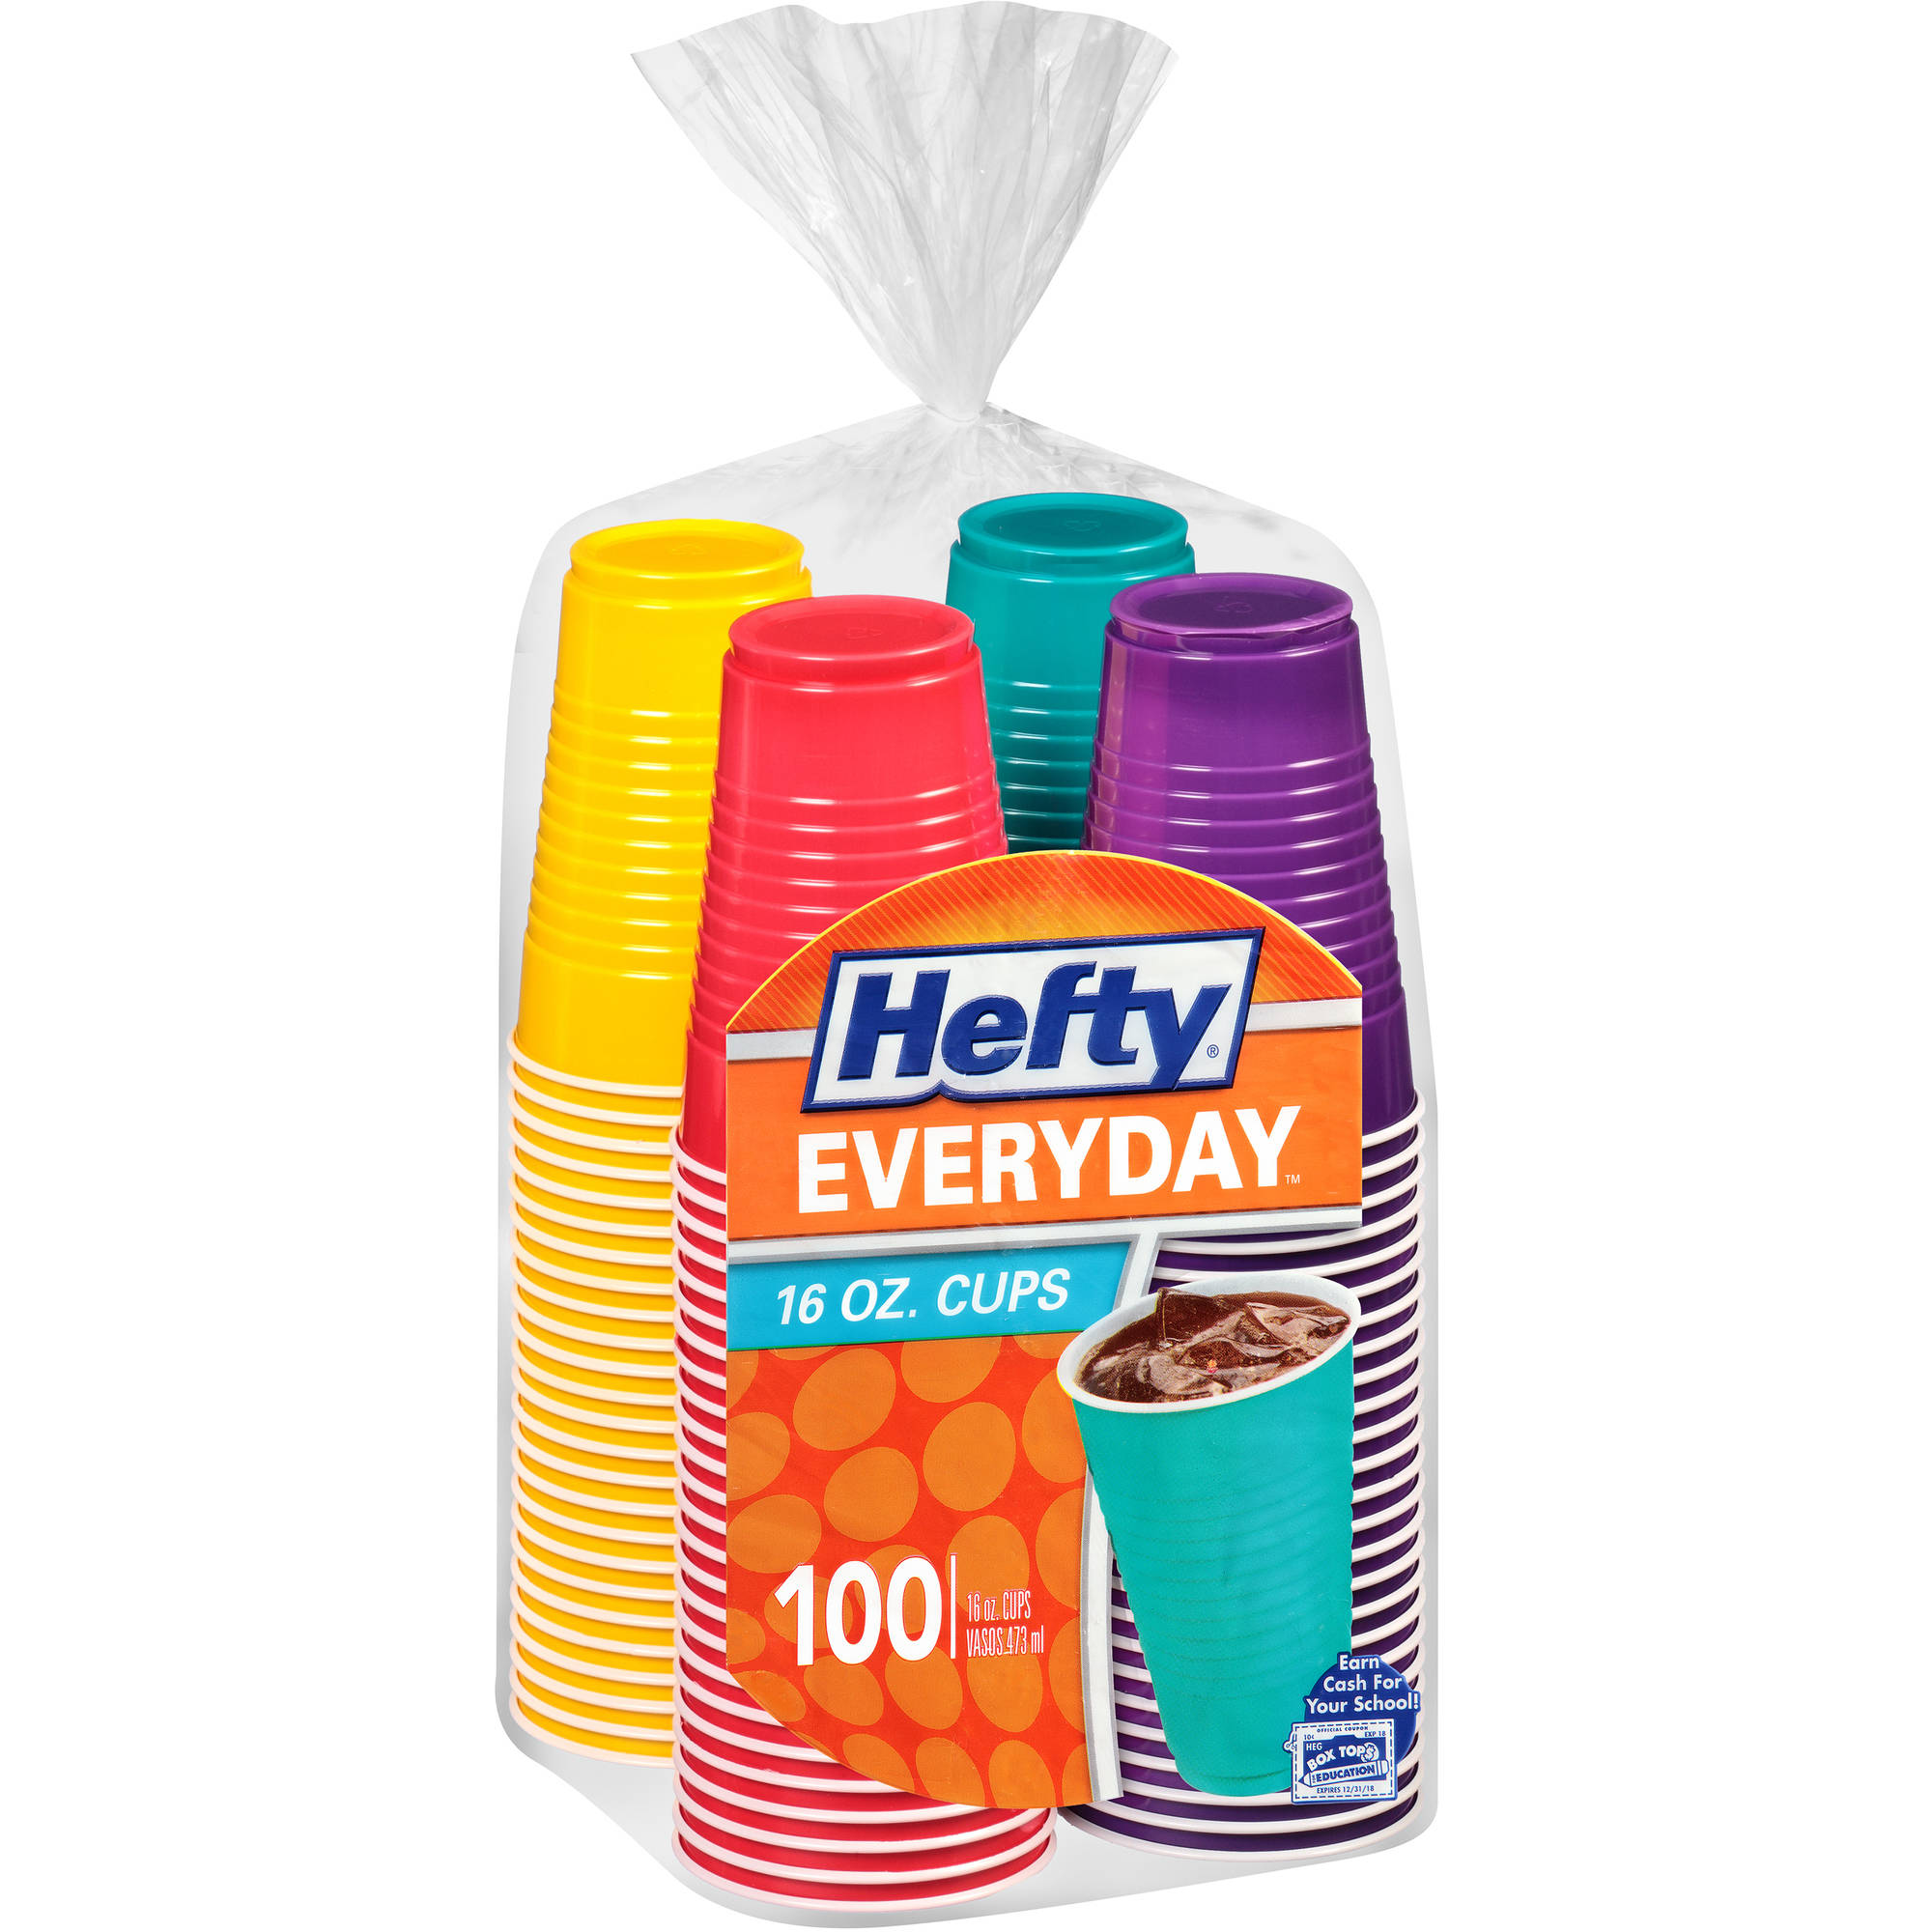 Hefty Party Cups, 16 oz, 100 count